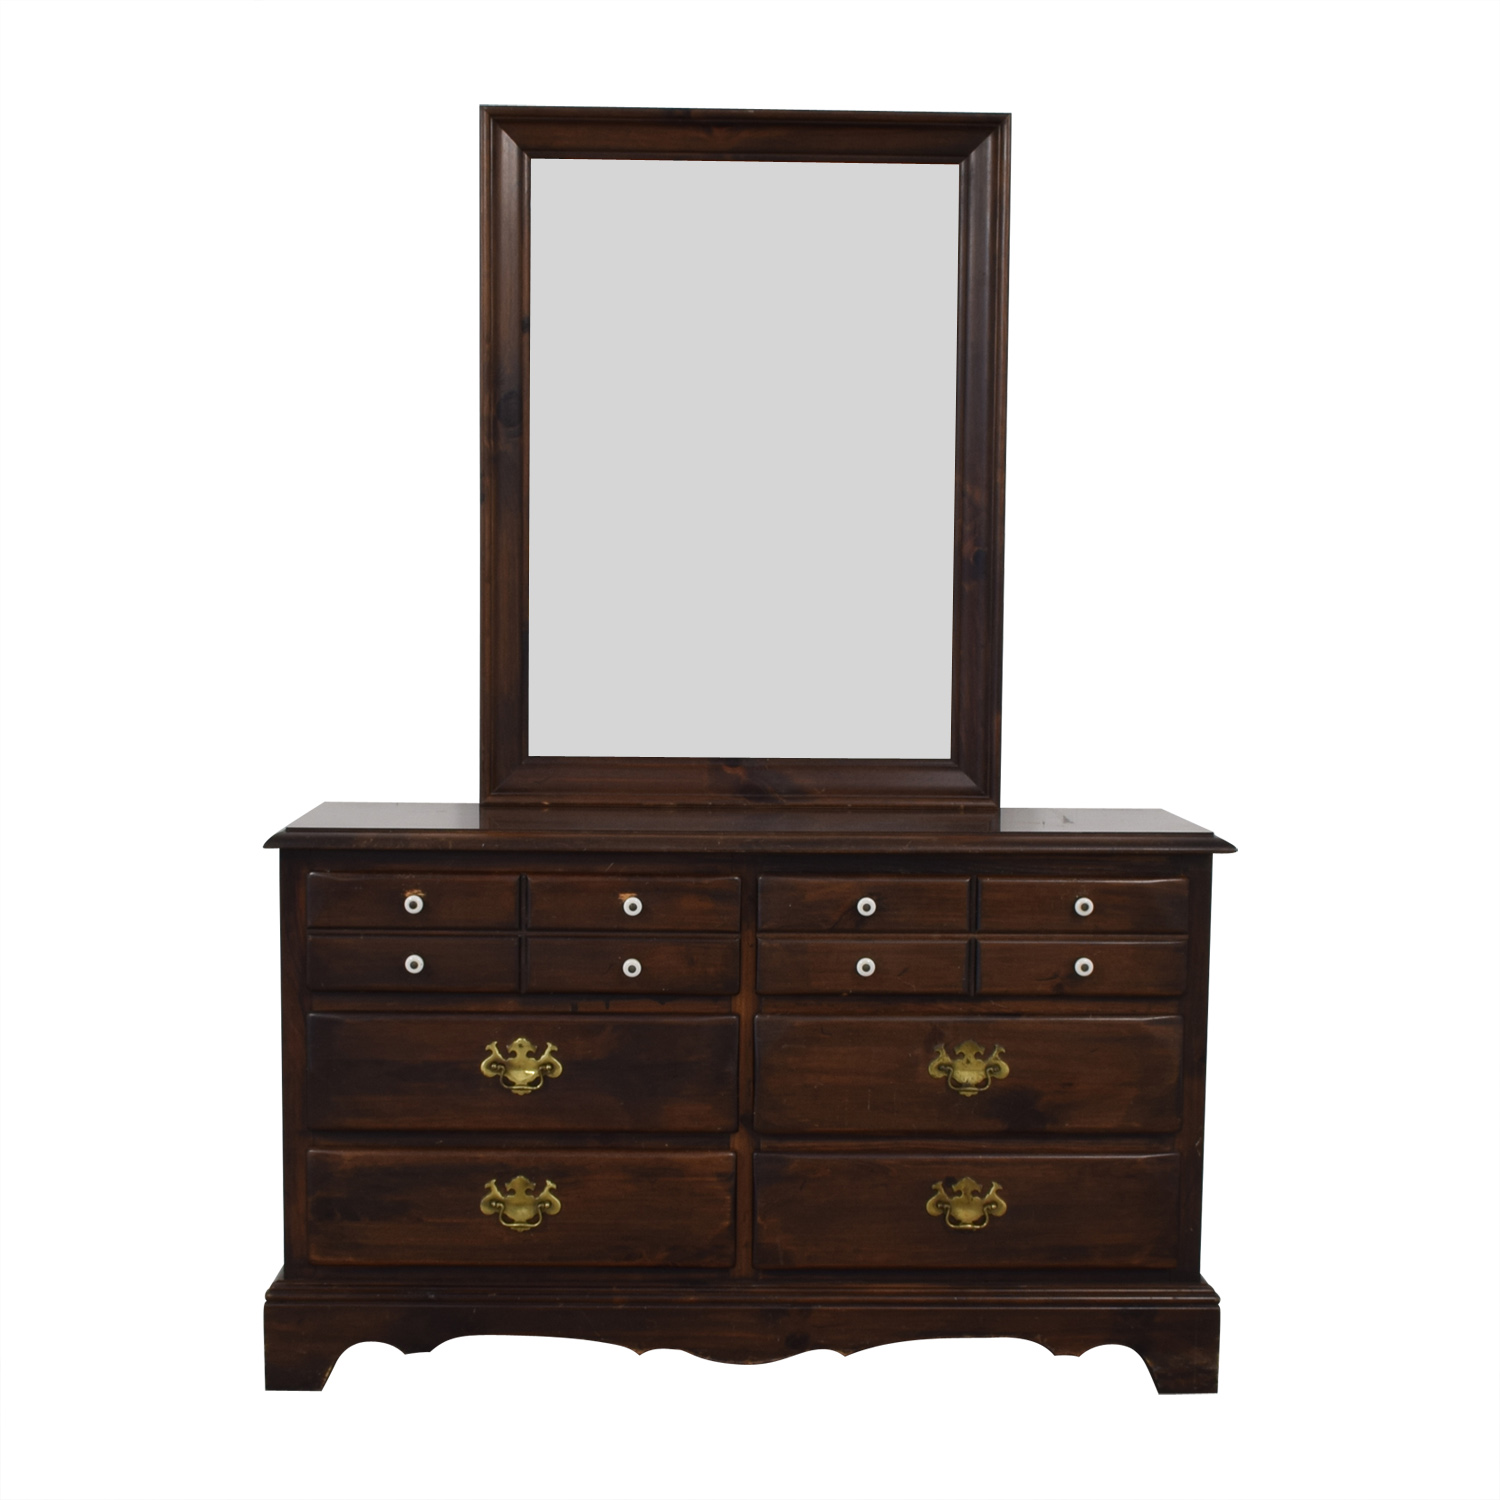 Ethan Allen Six Drawer Dresser With Mirror